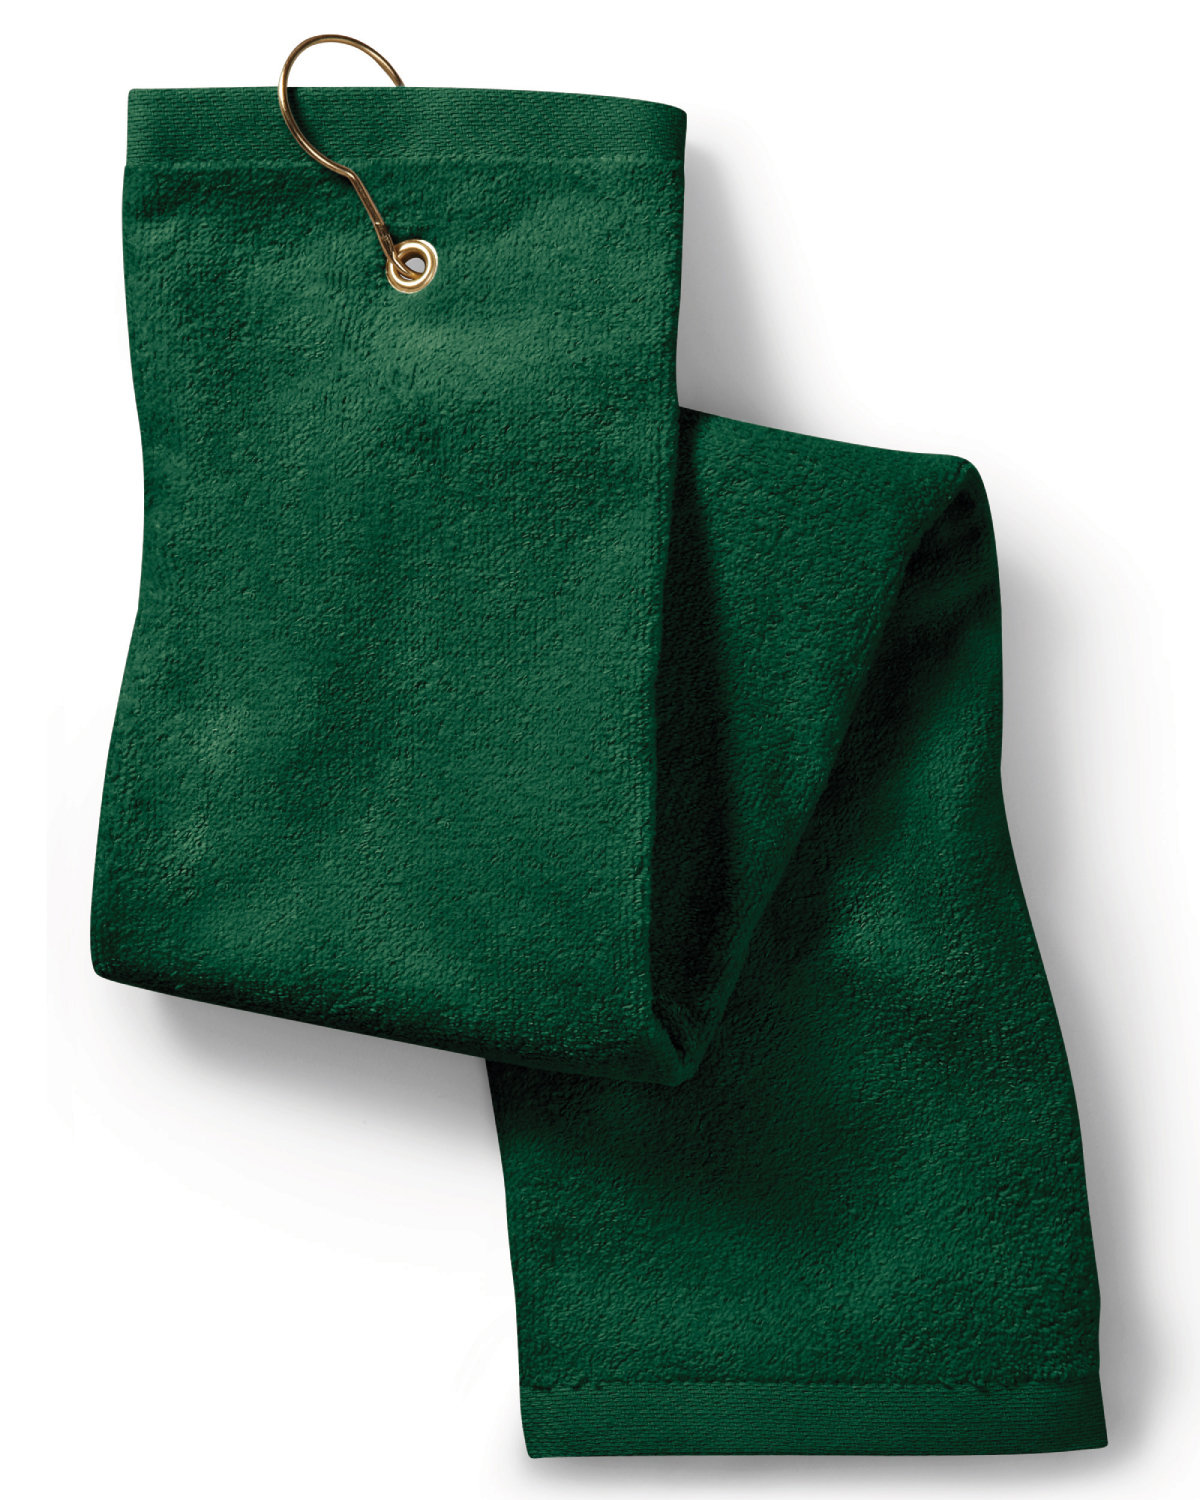 Towels Plus Deluxe Tri-Fold Hemmed Hand Towel with CenterGrommet and Hook HUNTER